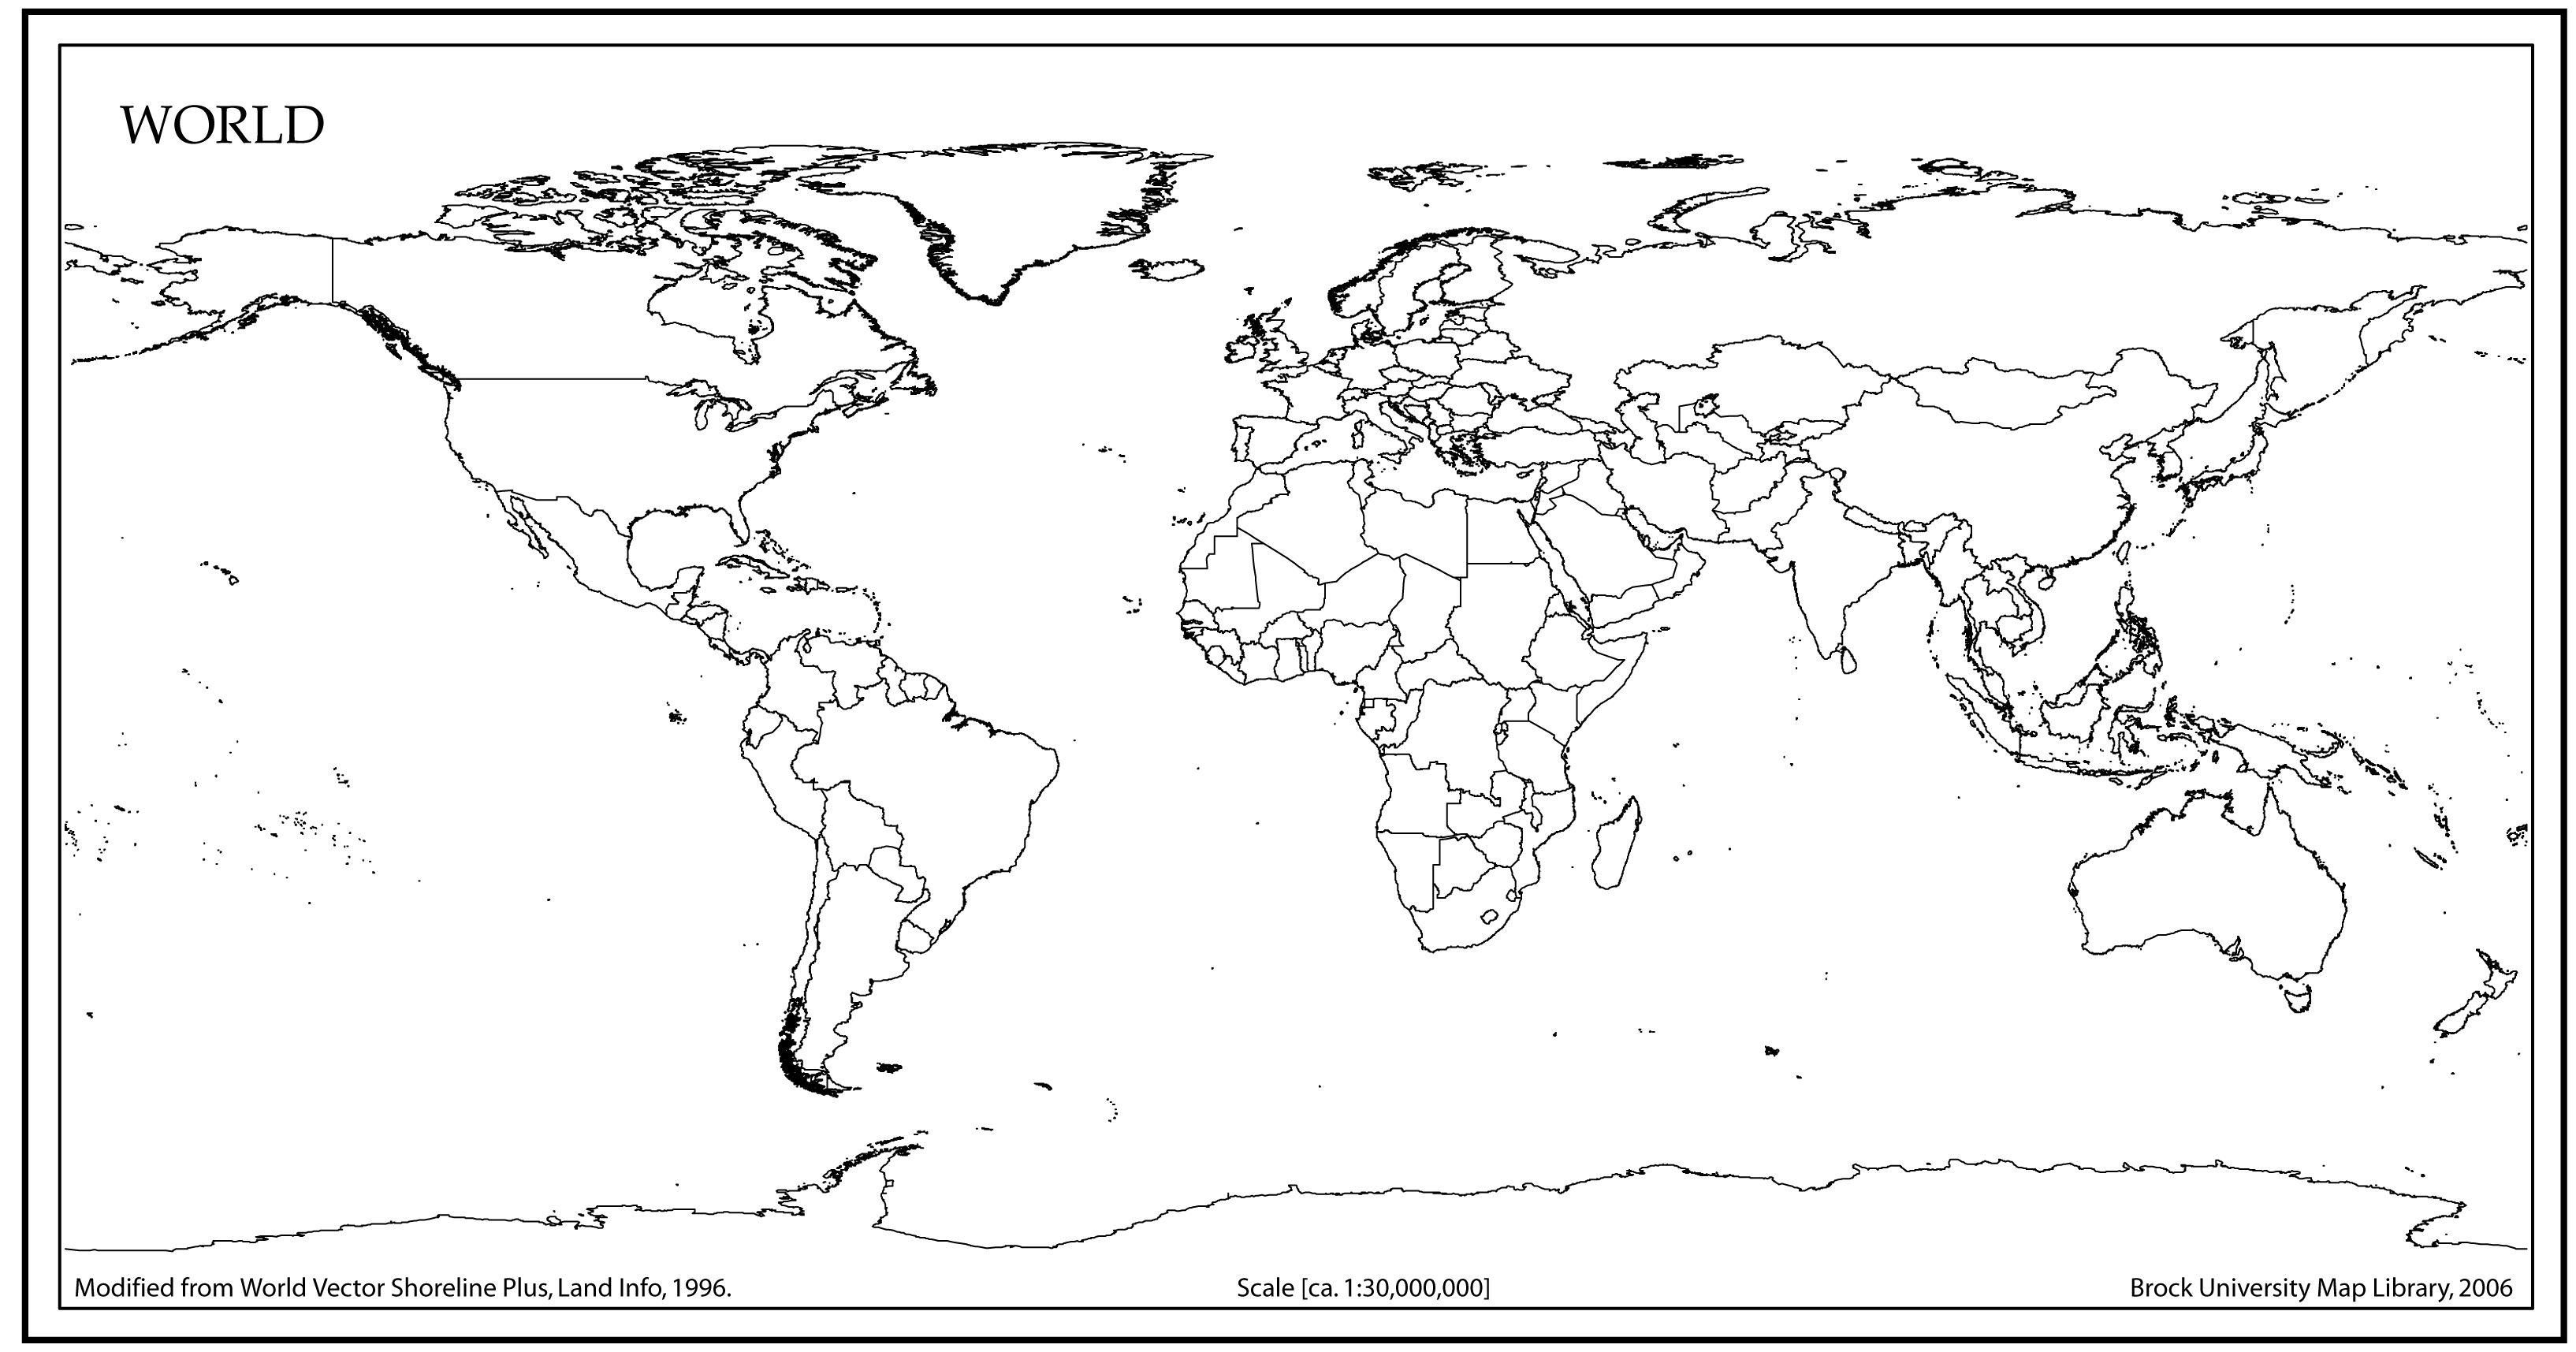 World Map Outline with Countries | World map | Blank world map ...